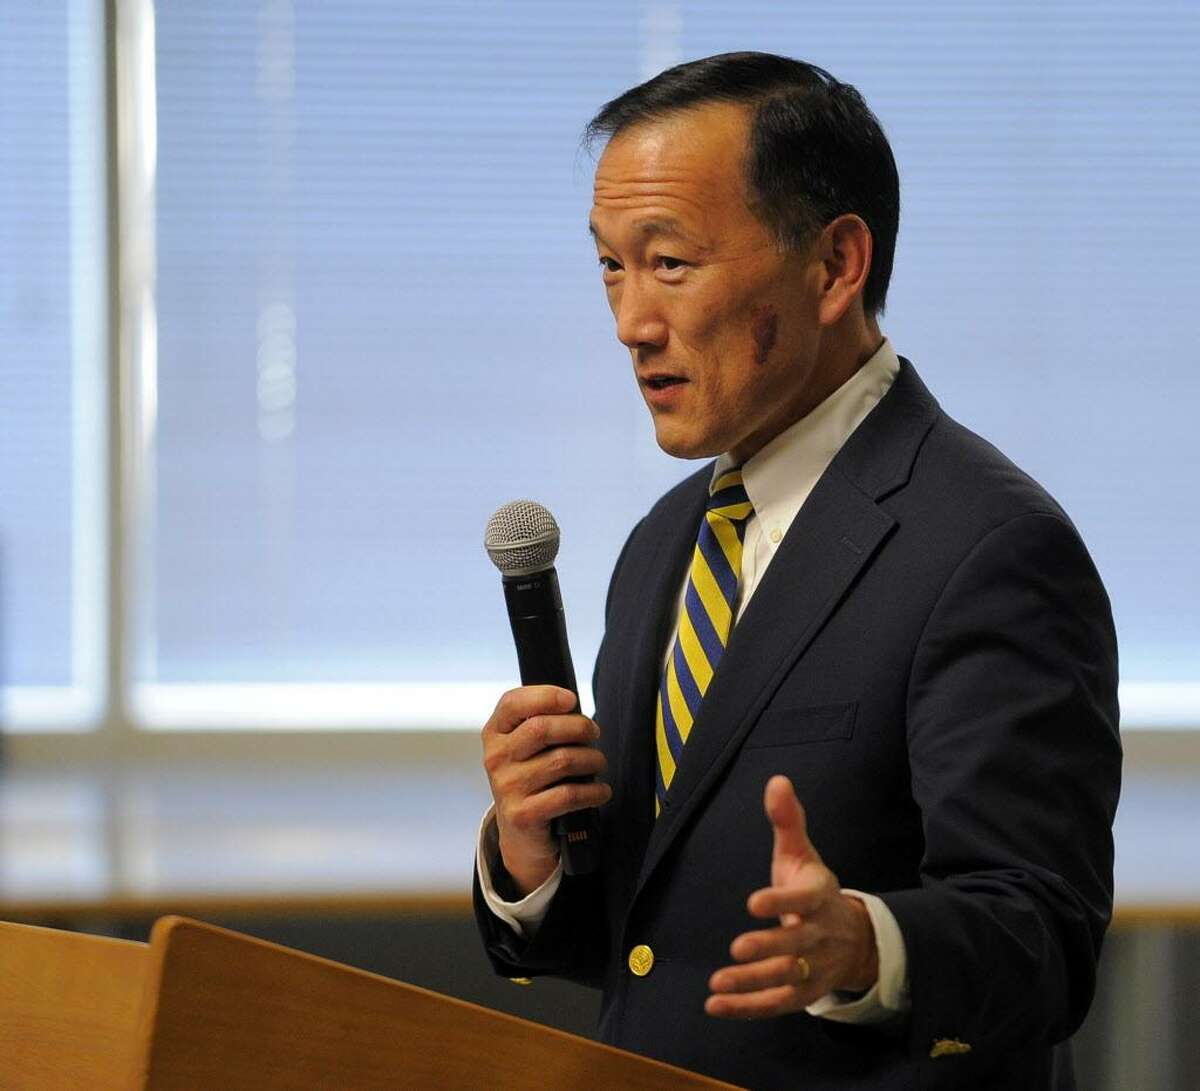 Earl Kim was unanimously voted by Stamford Board of Education as the next Superintendent of Schools on March 22, 2016.